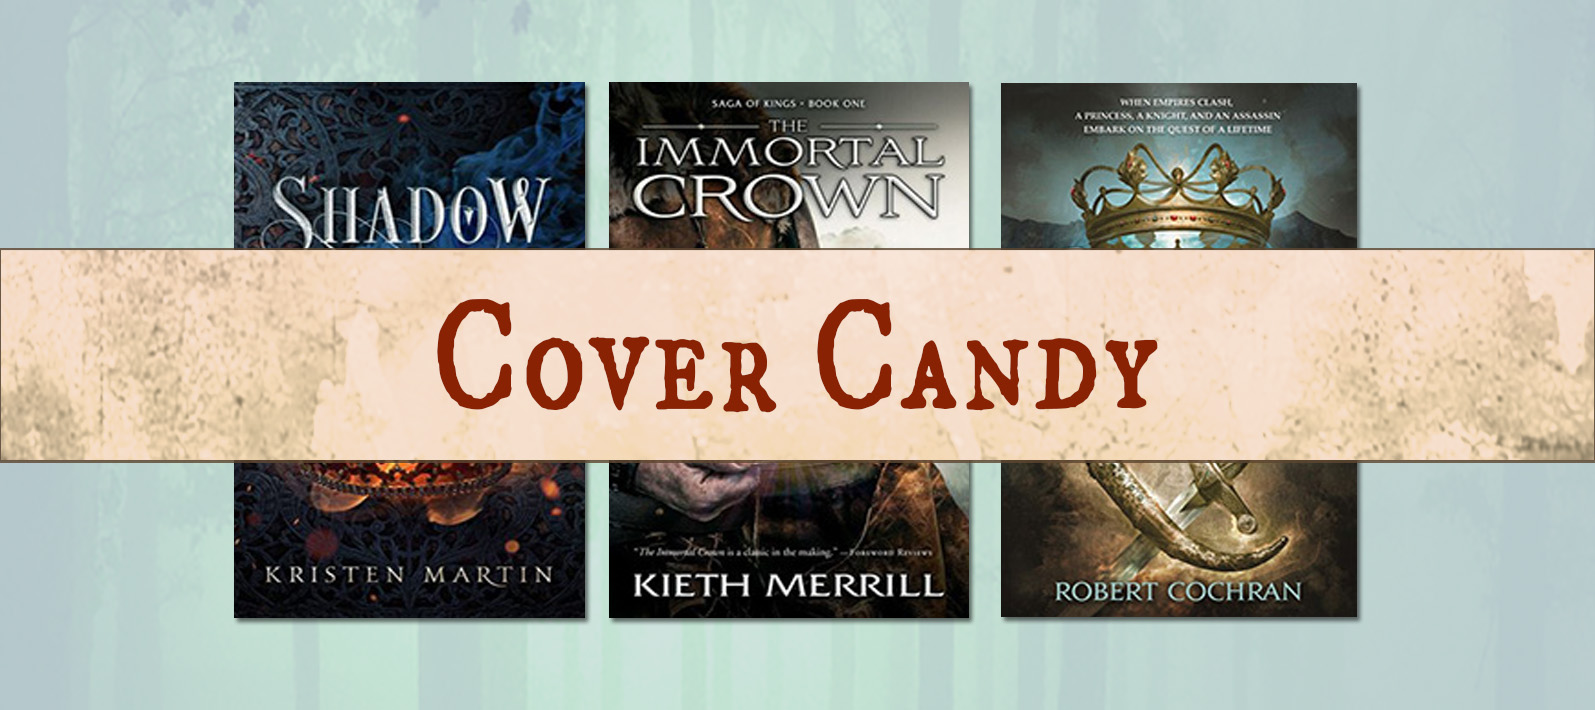 In Cover Candy #12 (The One With the Crowns) we're looking at books with crowns on the covers. Ooo, shiny! www.robinlythgoe.com